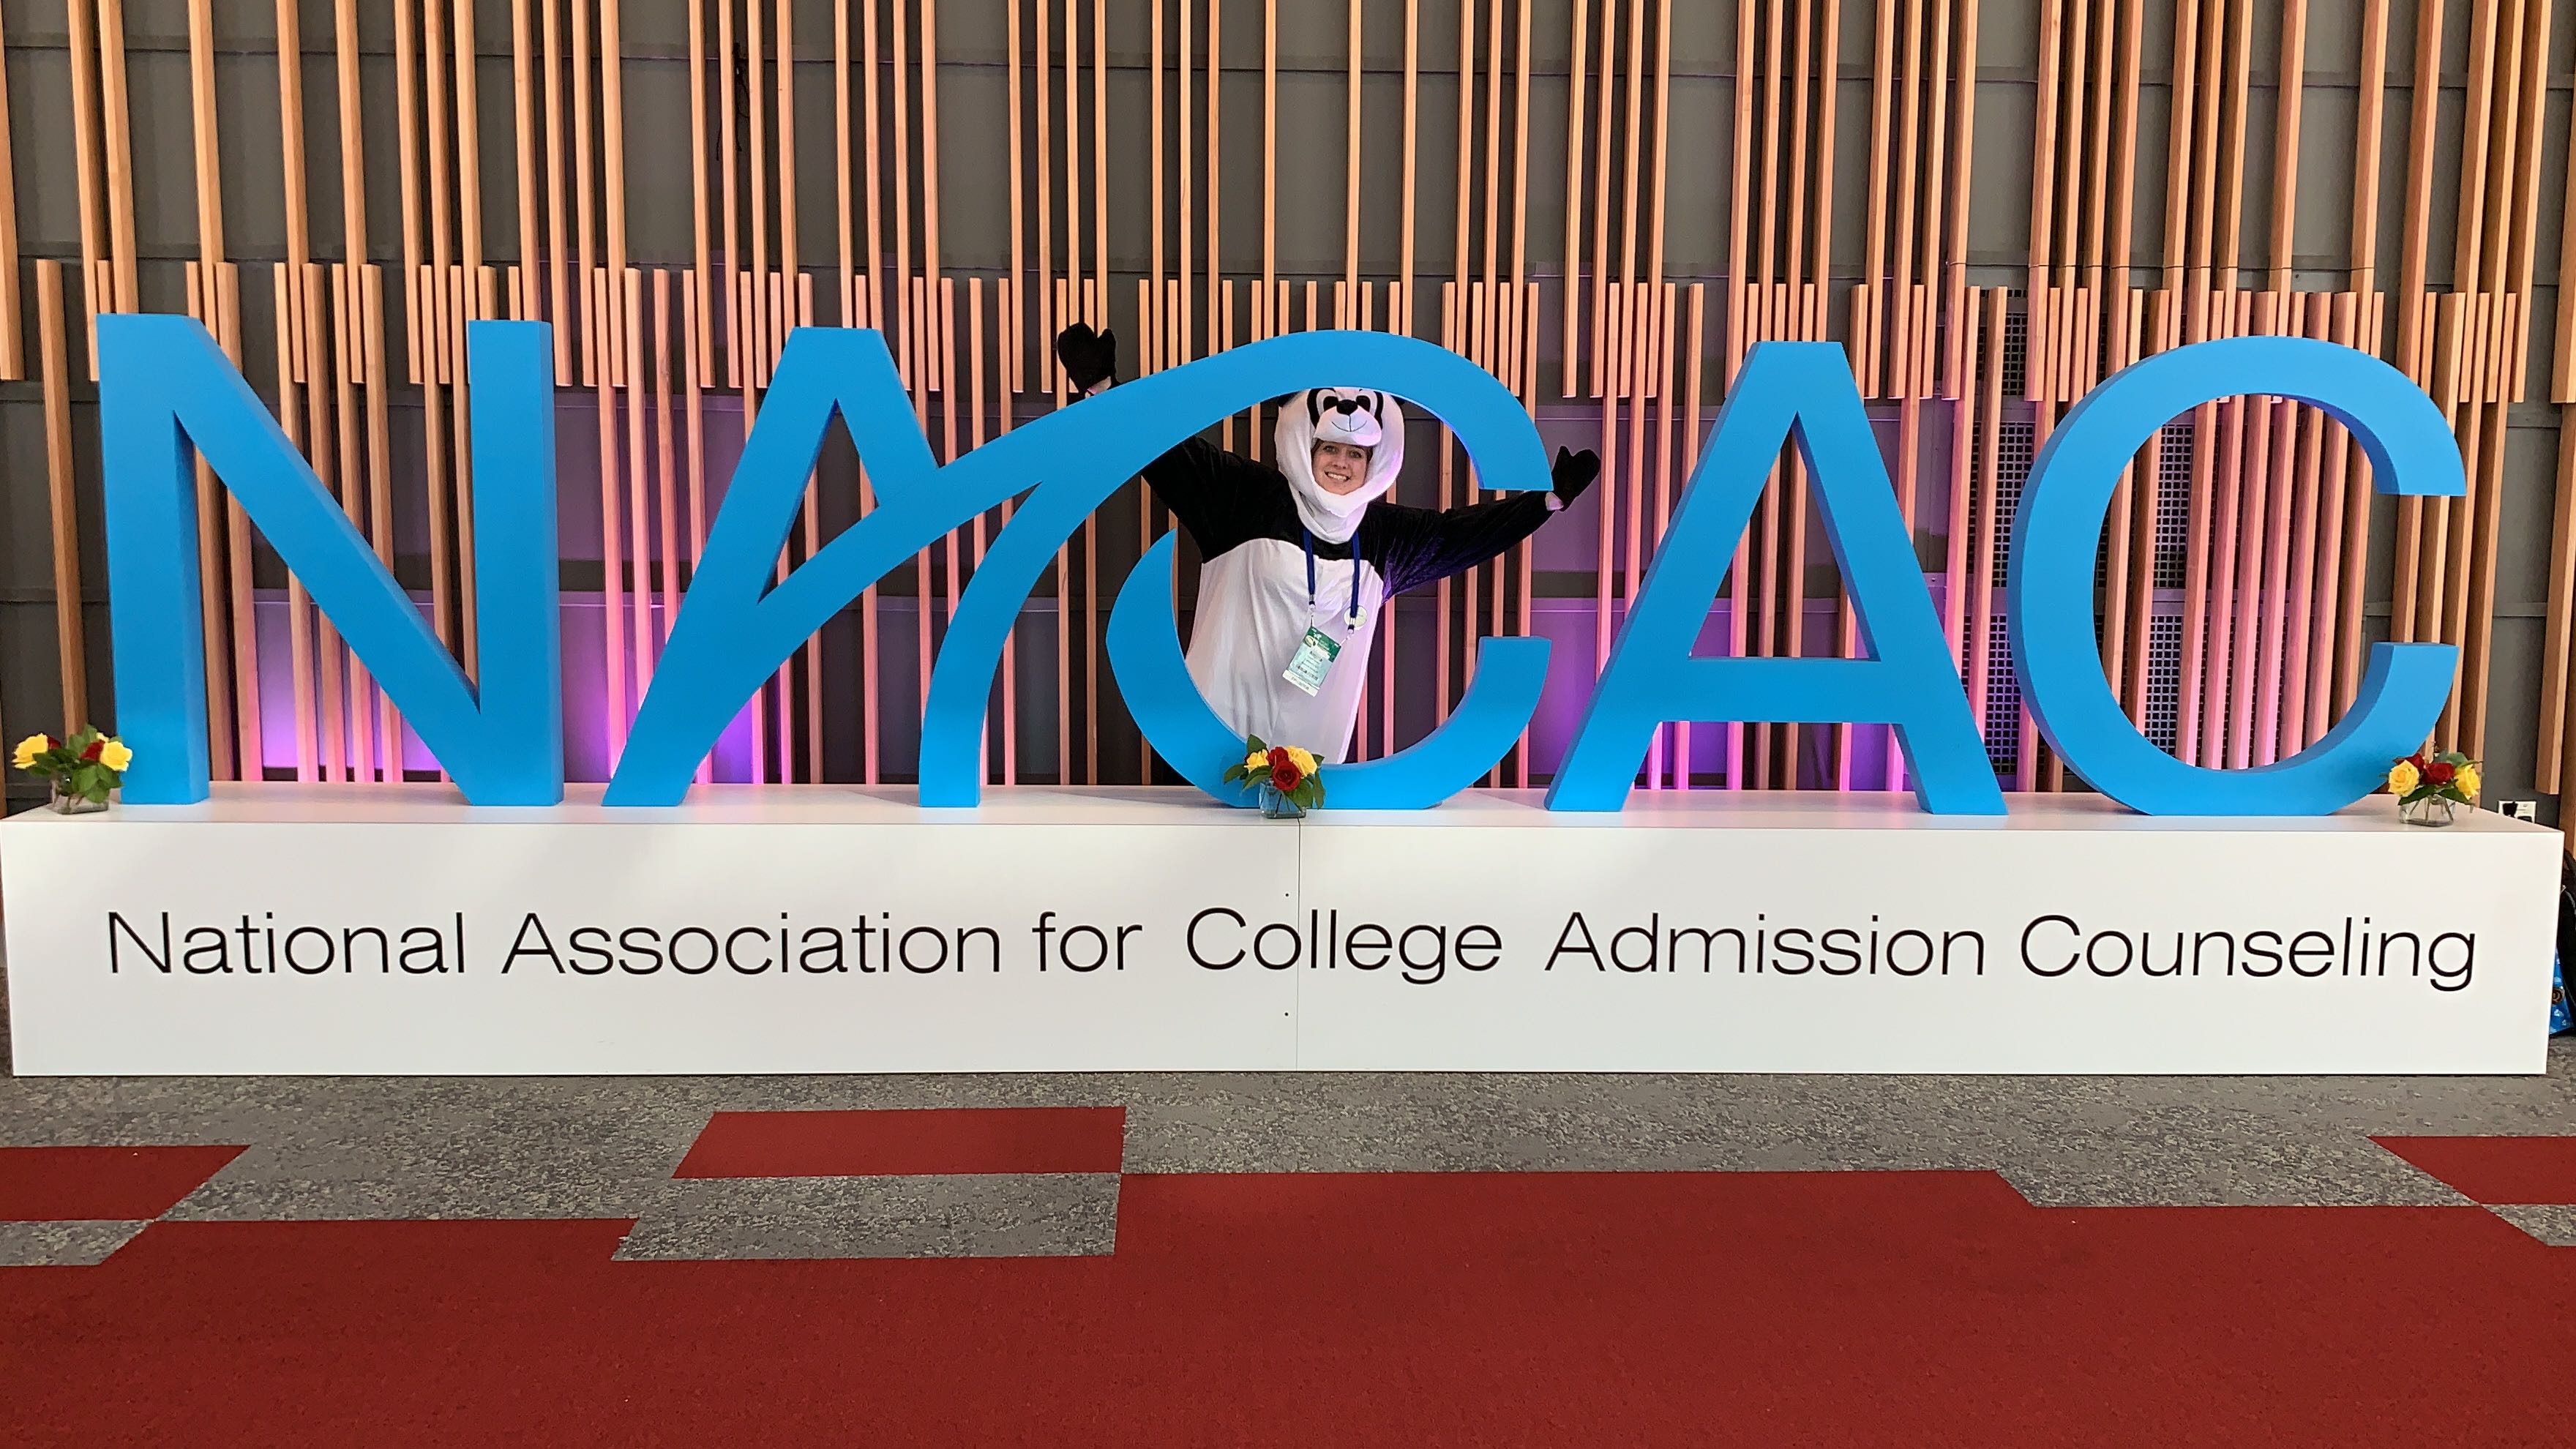 Pete the panda at NACAC